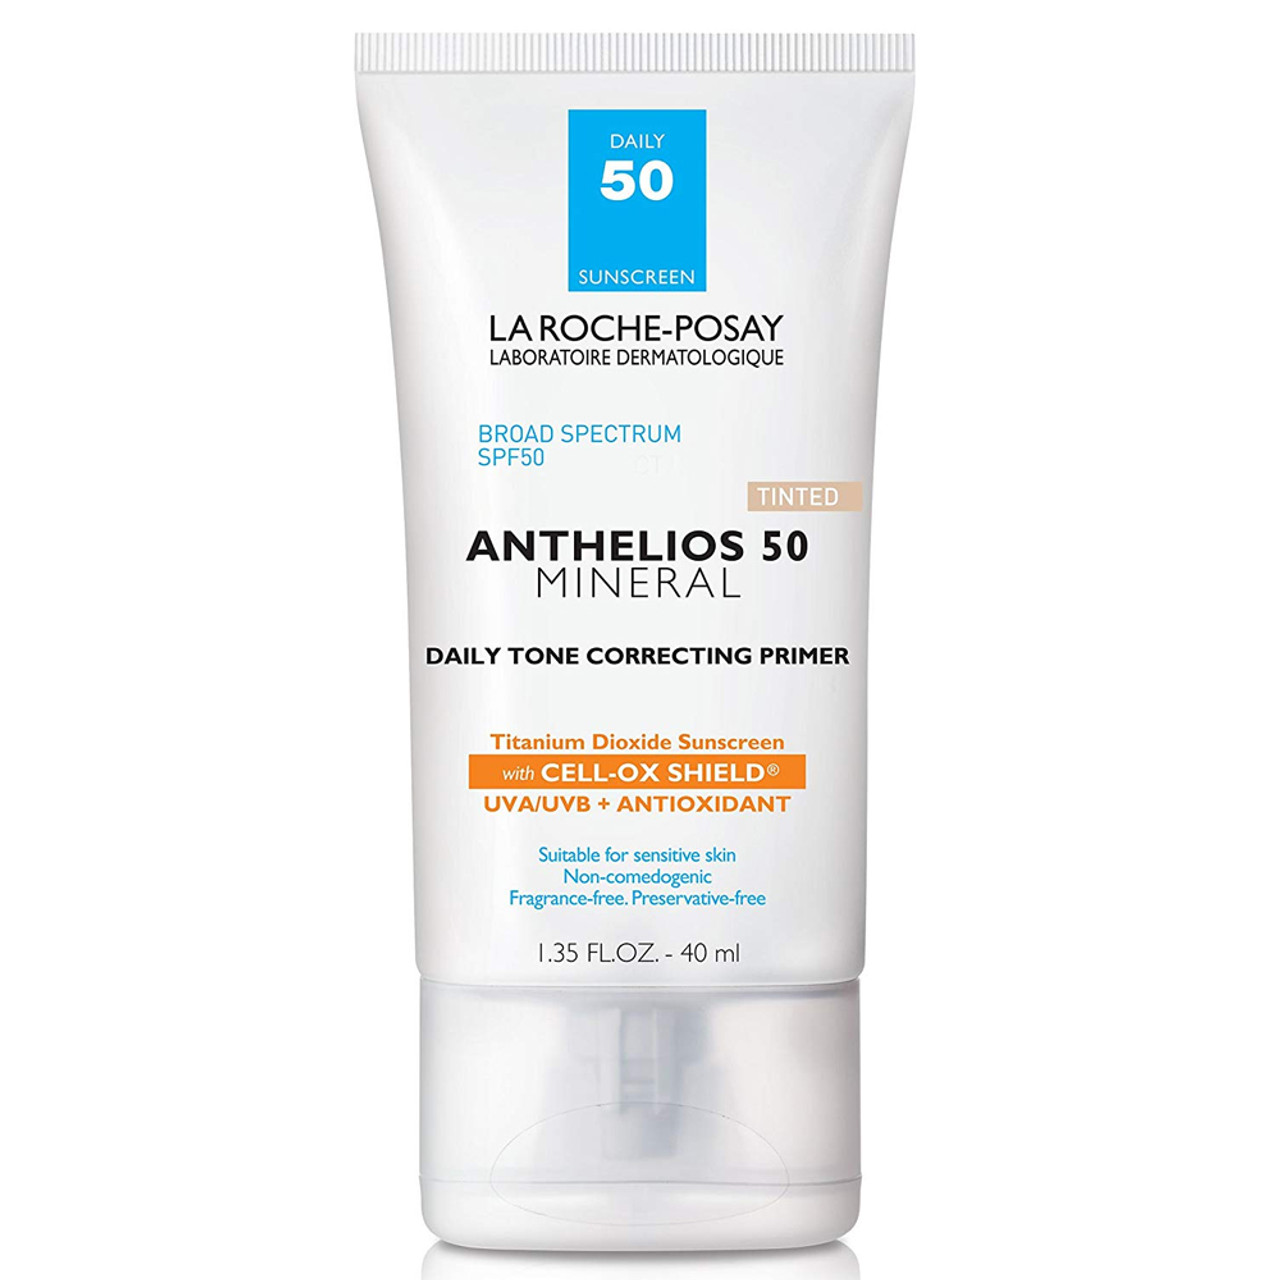 La Roche Posay Anthelios 50 Mineral Tinted Daily Tone Correcting Primer